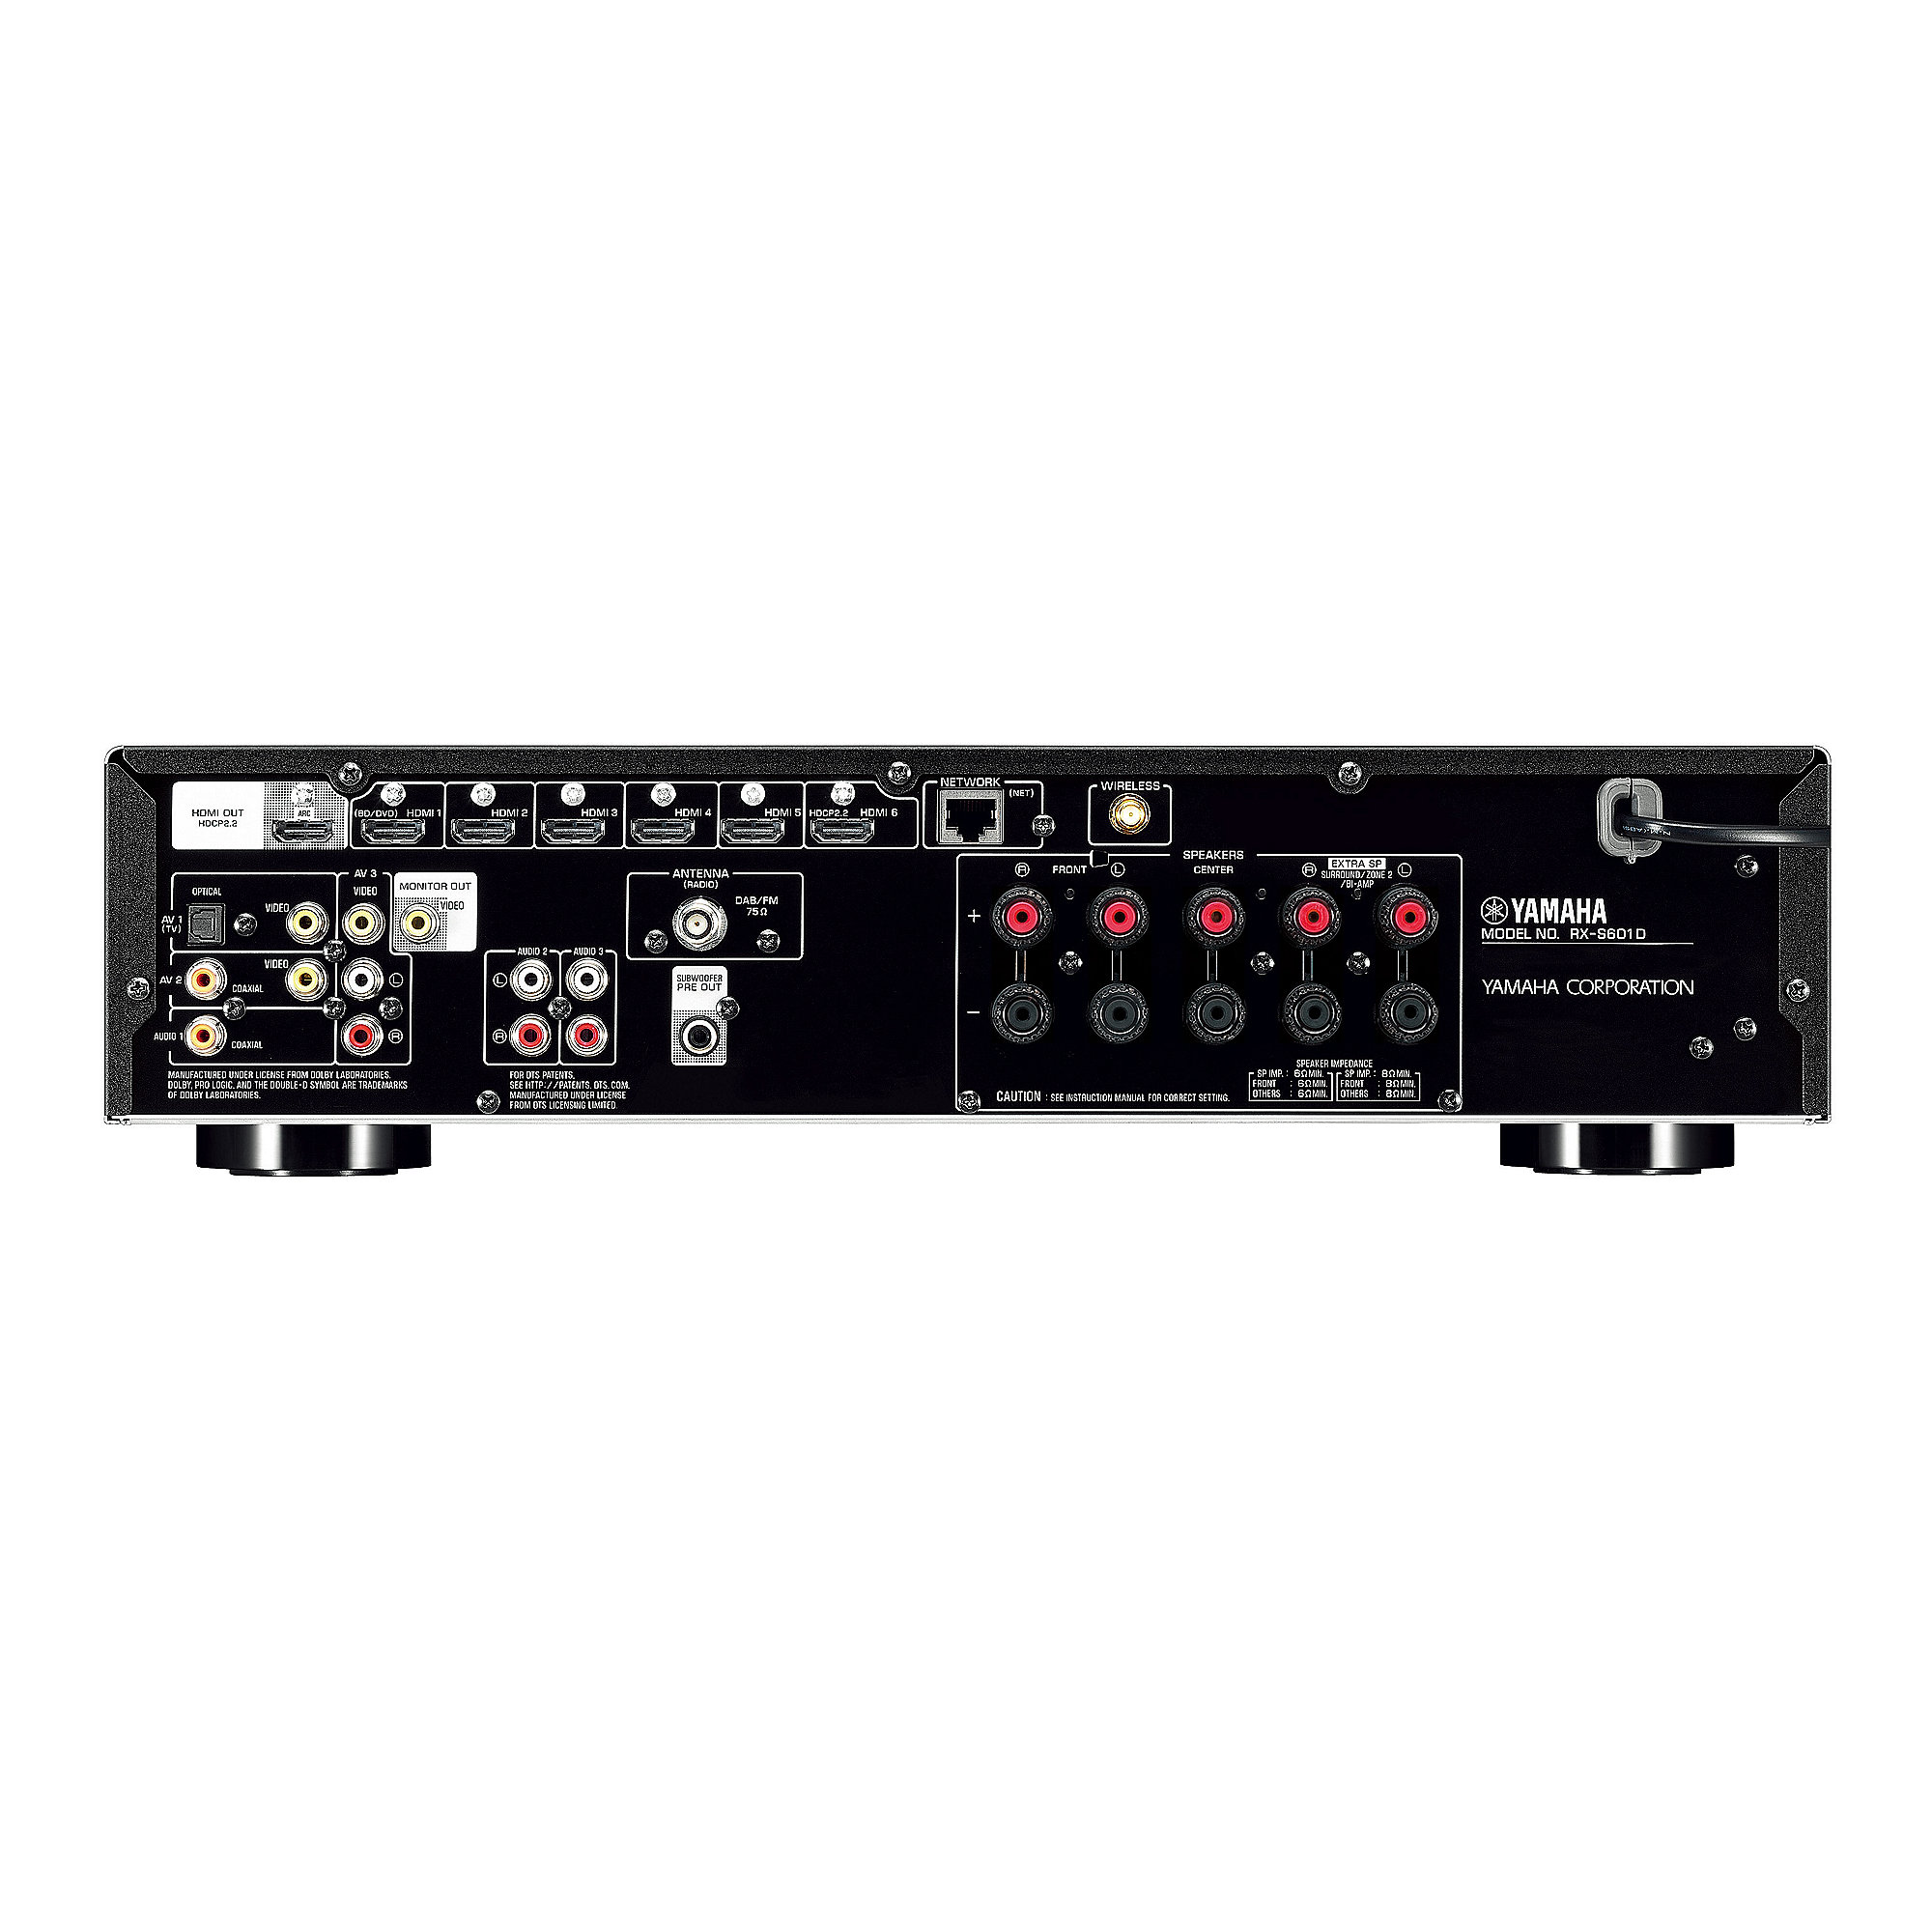 Yamaha rx s601dab 5 1 av receiver musiccast spotify for Yamaha tv receiver